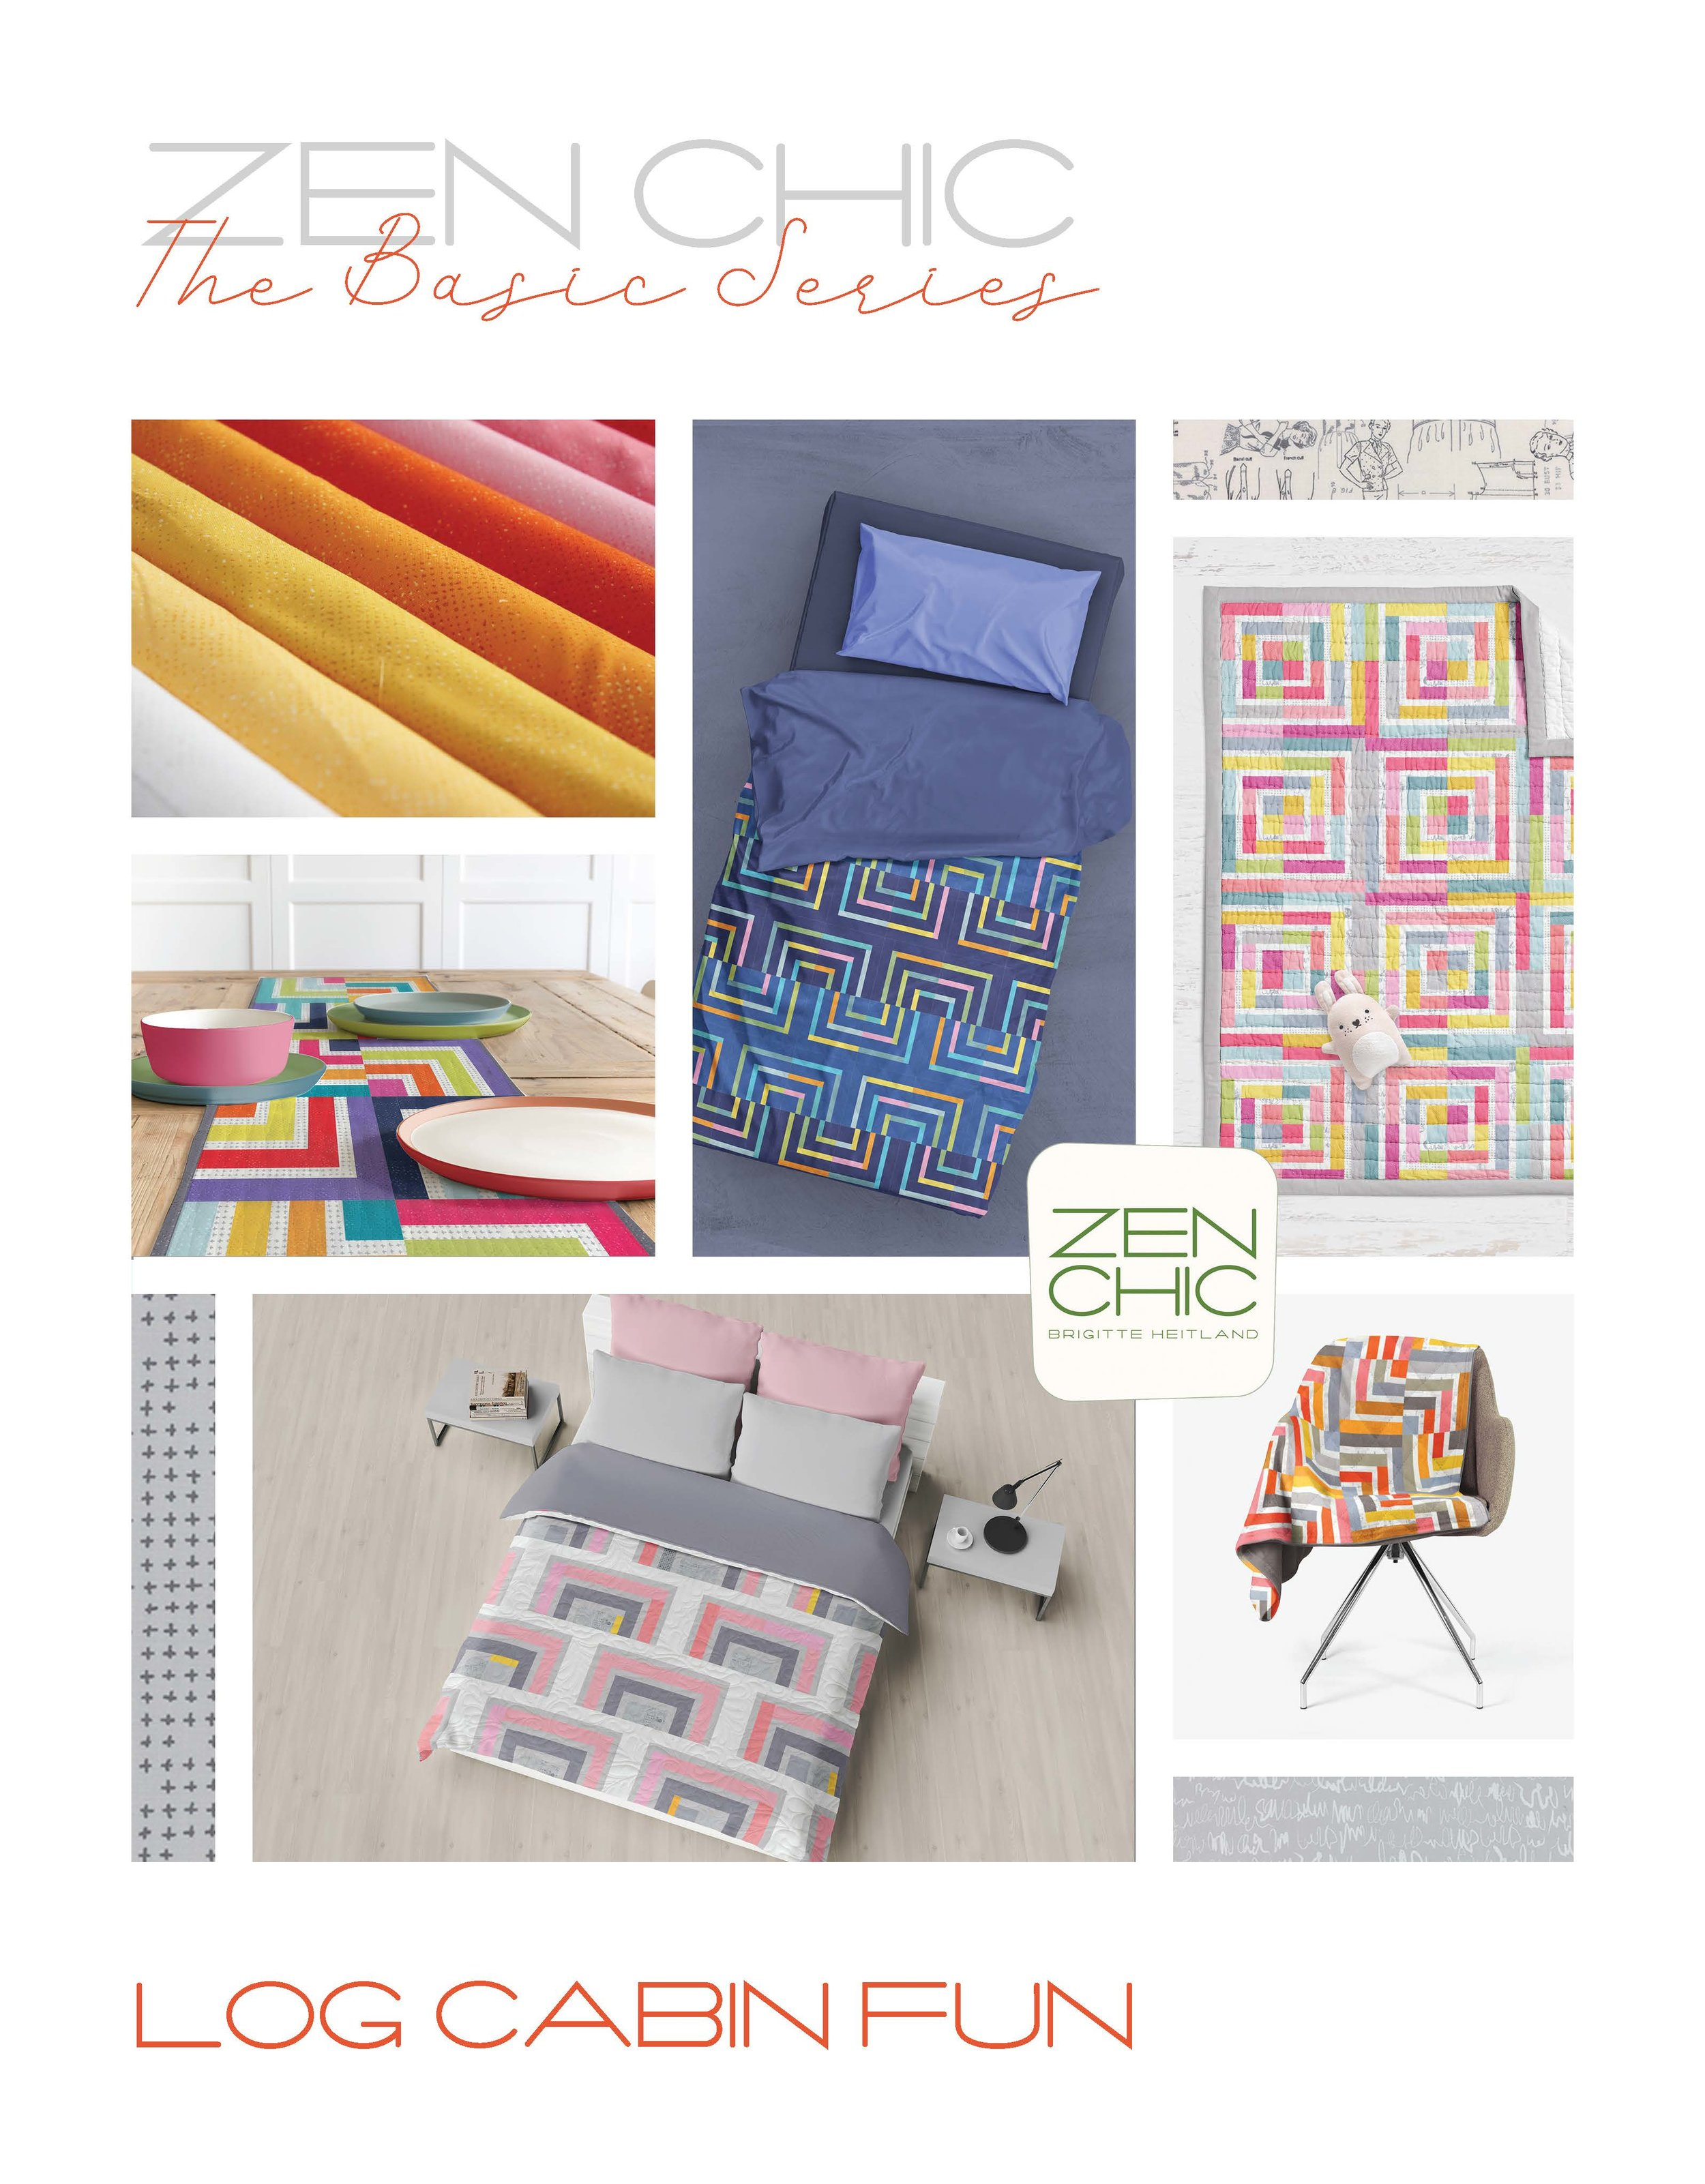 The Log Cabin Fun pattern from Zen Chic's Basic Series offers five inspiring projects in one beautiful booklet style pattern.